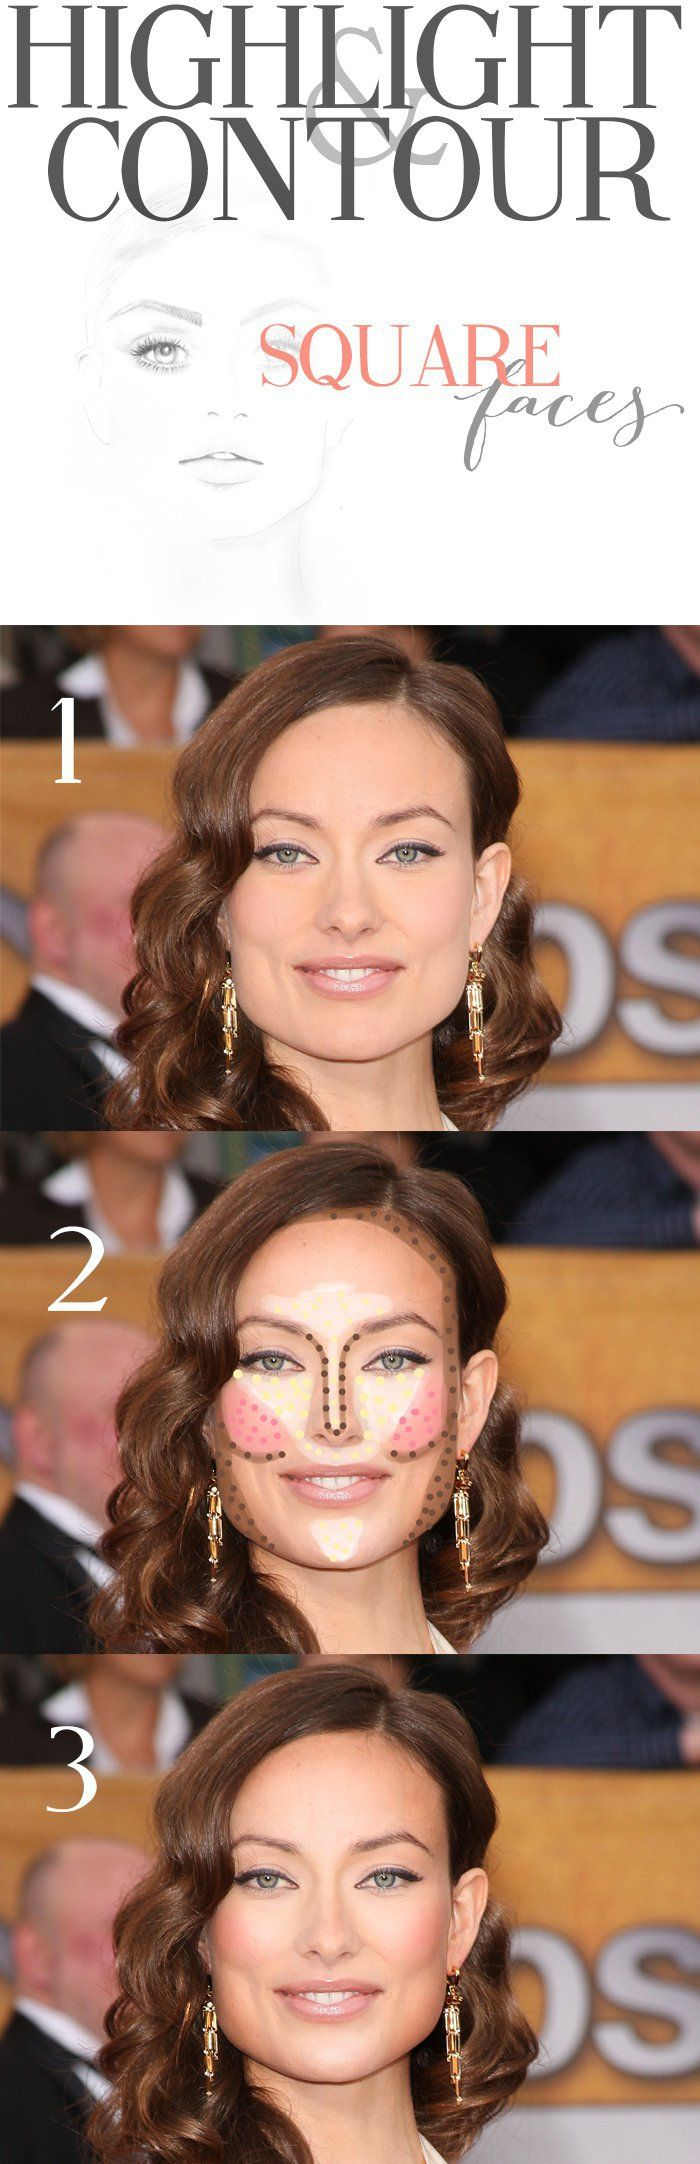 Contouring for square faces.                                                                                                                                                     More